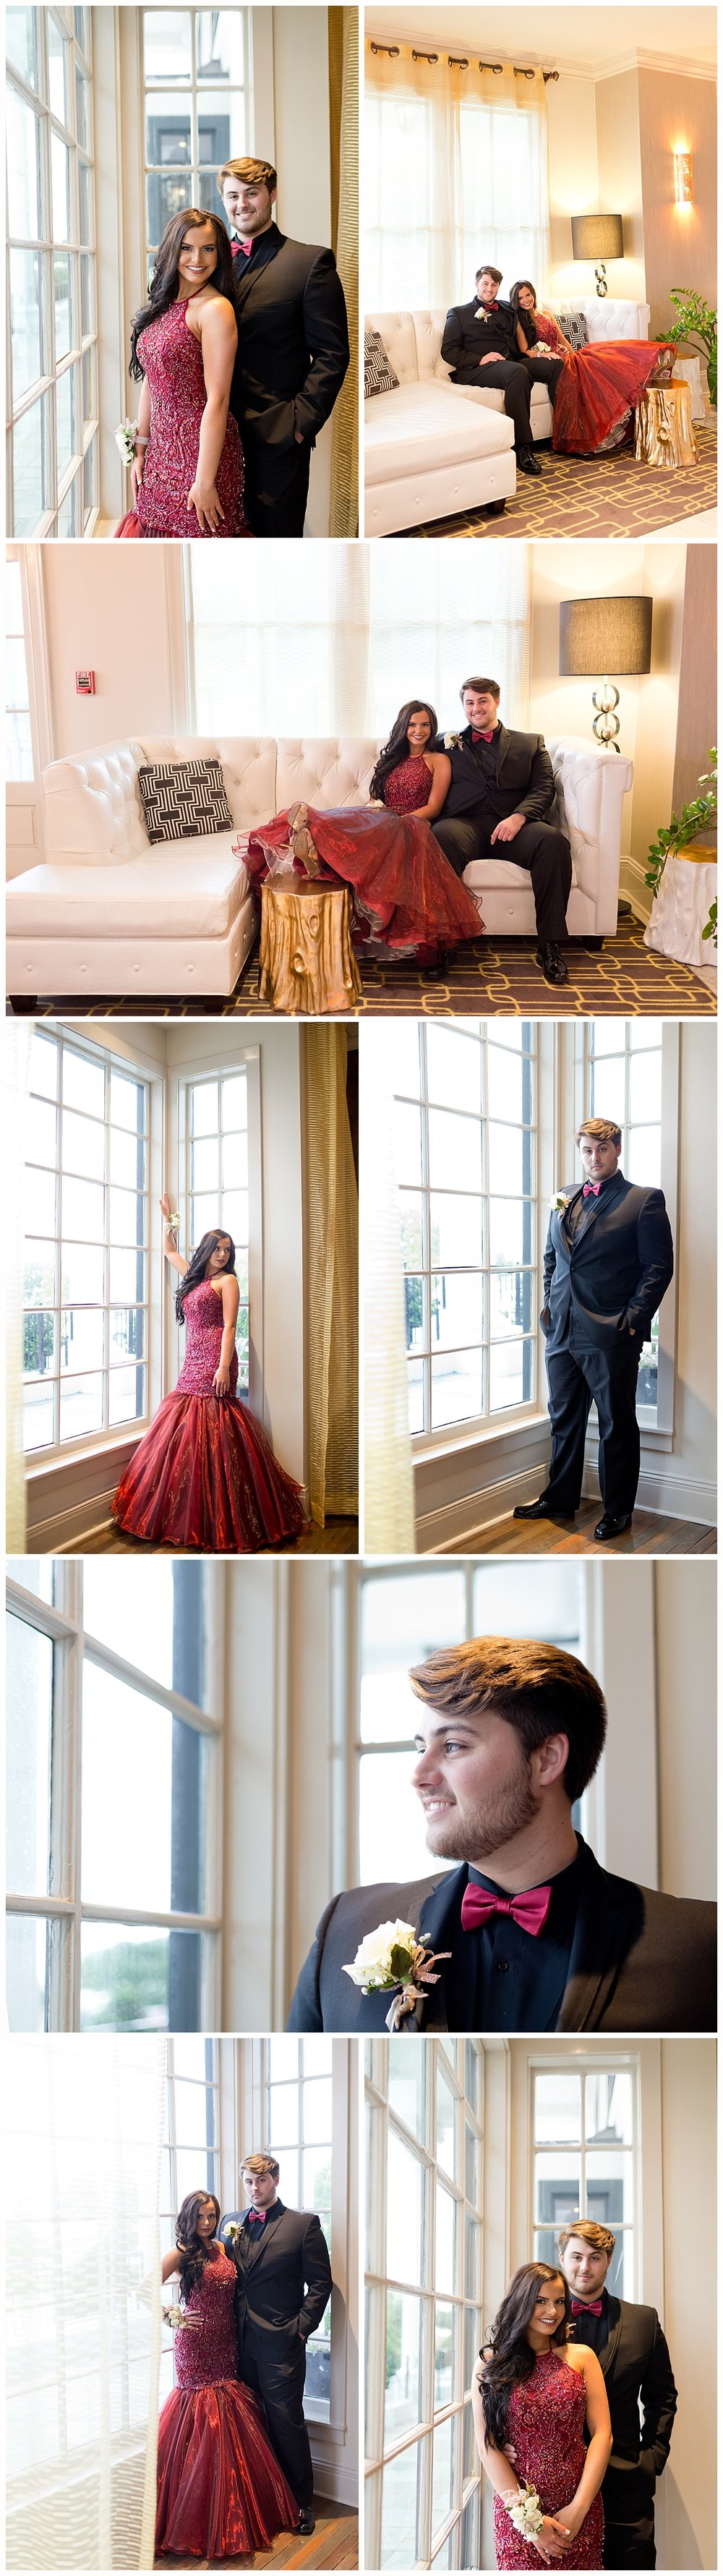 formal prom portraits at White House Hotel Biloxi